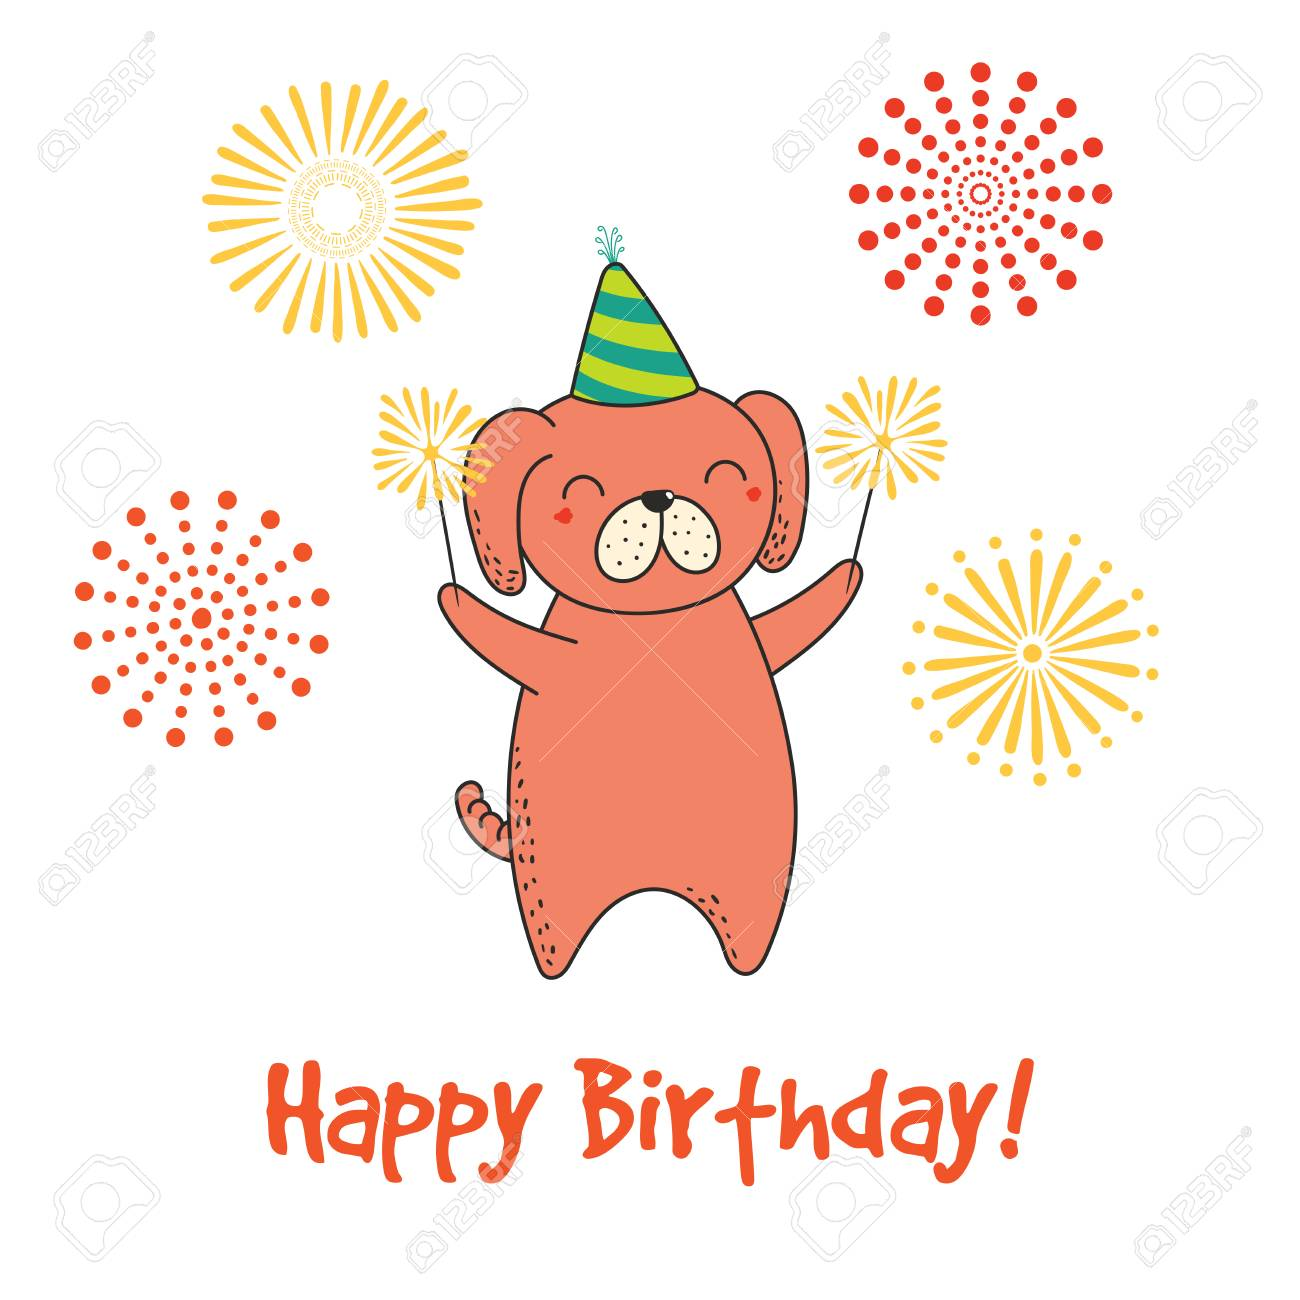 Hand drawn happy birthday greeting card with cute funny cartoon hand drawn happy birthday greeting card with cute funny cartoon dog with sparklers text m4hsunfo